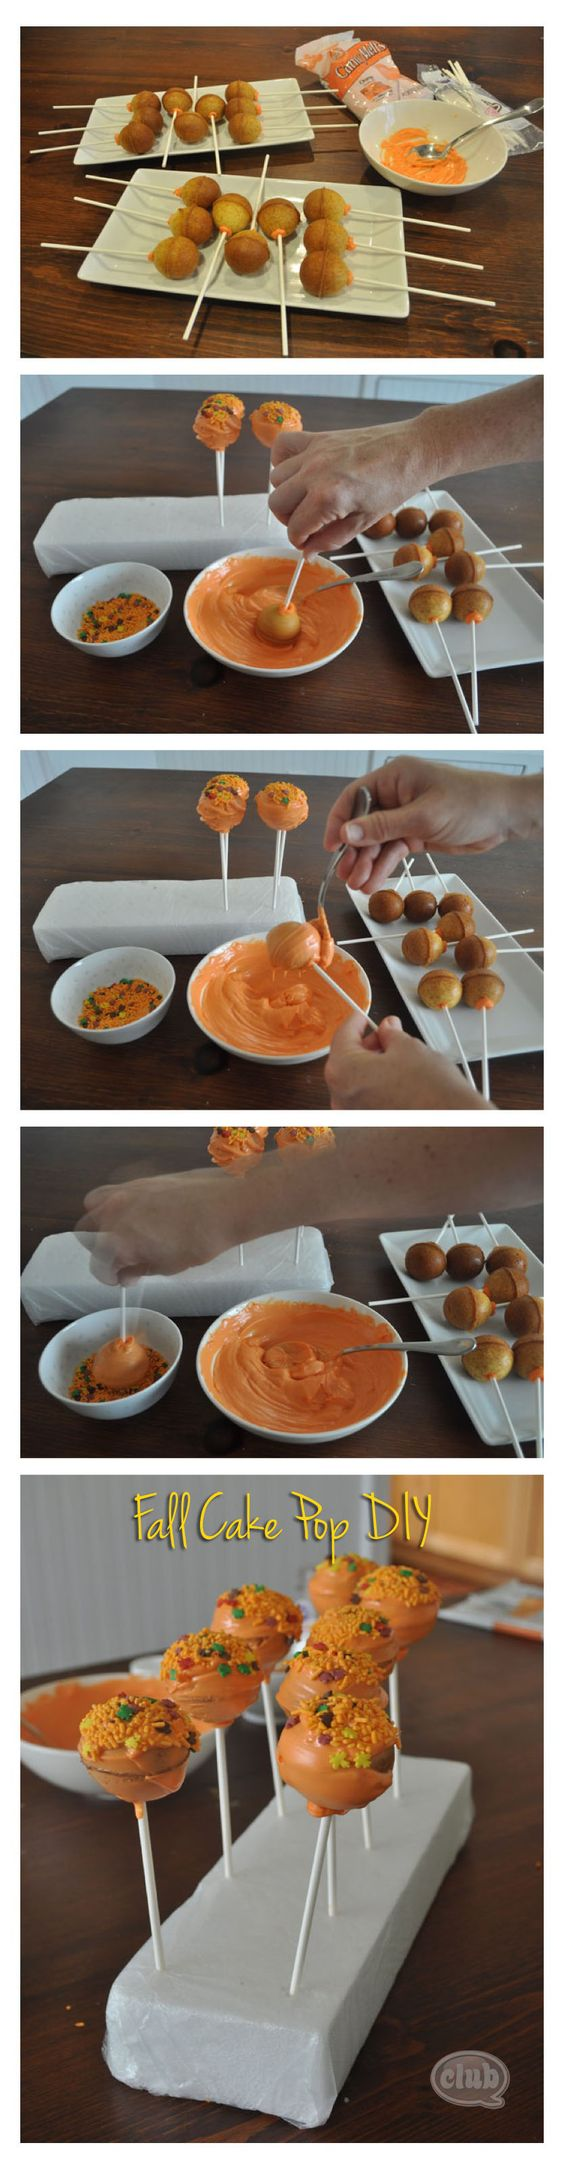 As Seen On Tv Cake Pop Pan Instructions